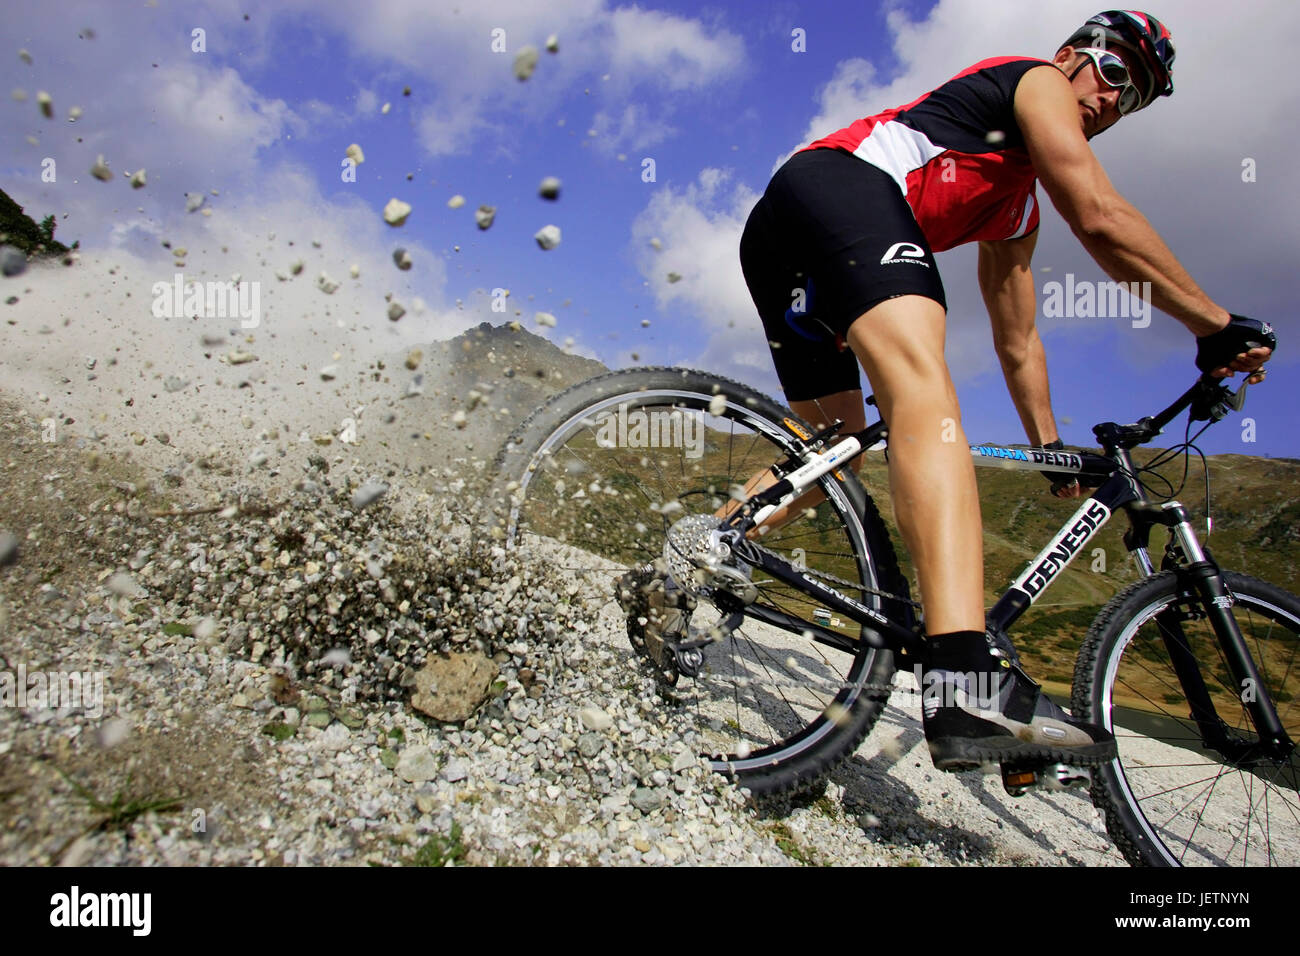 Mountain biker in action, Mountainbiker in Action - Stock Image